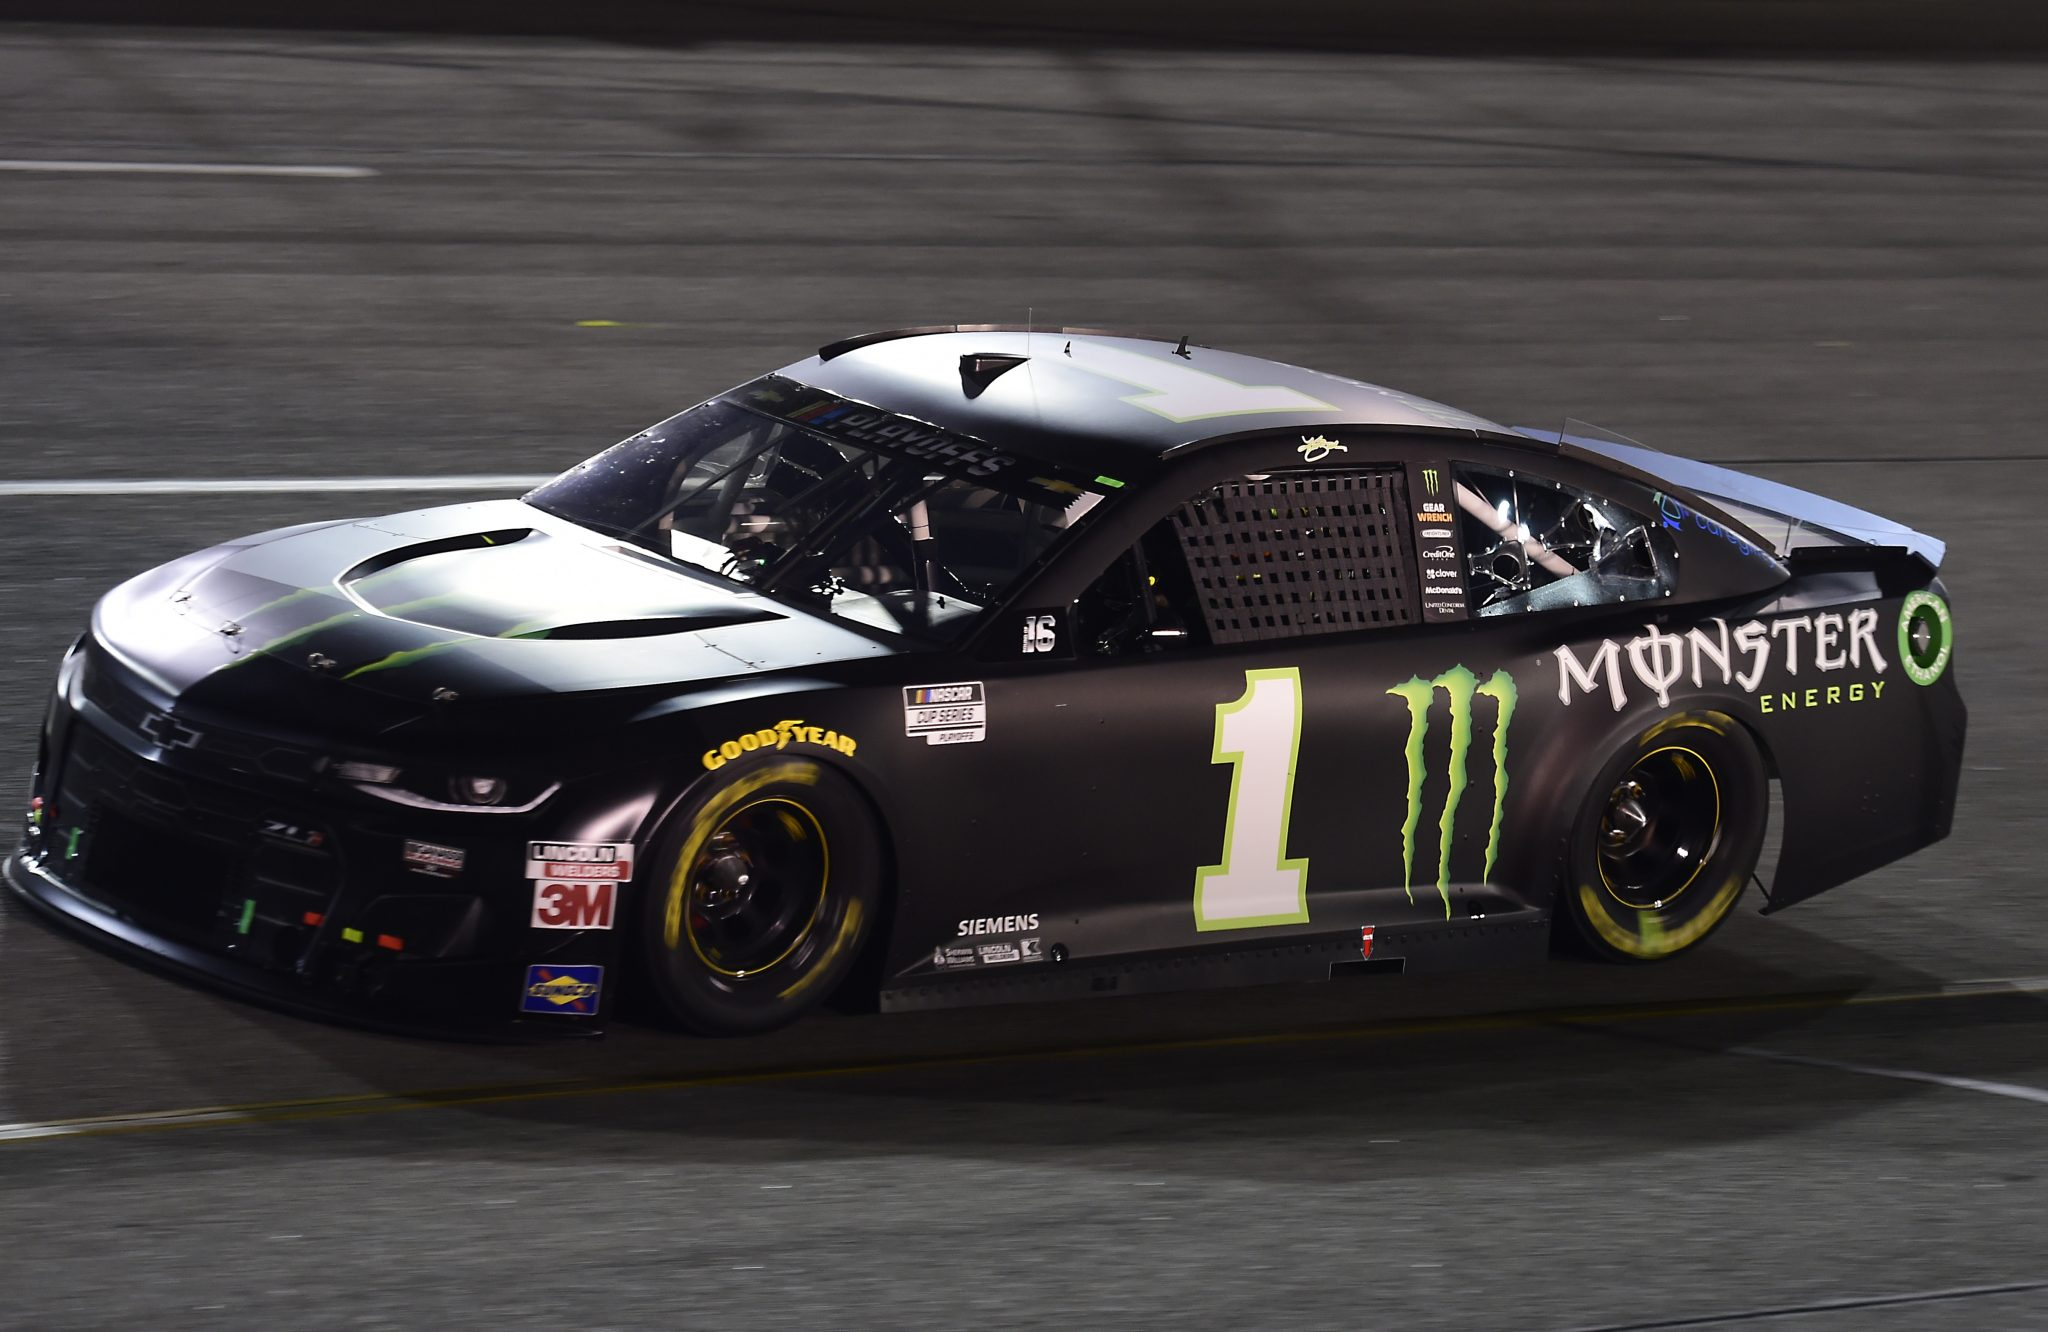 RICHMOND, VIRGINIA - SEPTEMBER 12: Kurt Busch, driver of the #1 Monster Energy Chevrolet, drives during the NASCAR Cup Series Federated Auto Parts 400 at Richmond Raceway on September 12, 2020 in Richmond, Virginia. (Photo by Jared C. Tilton/Getty Images) | Getty Images